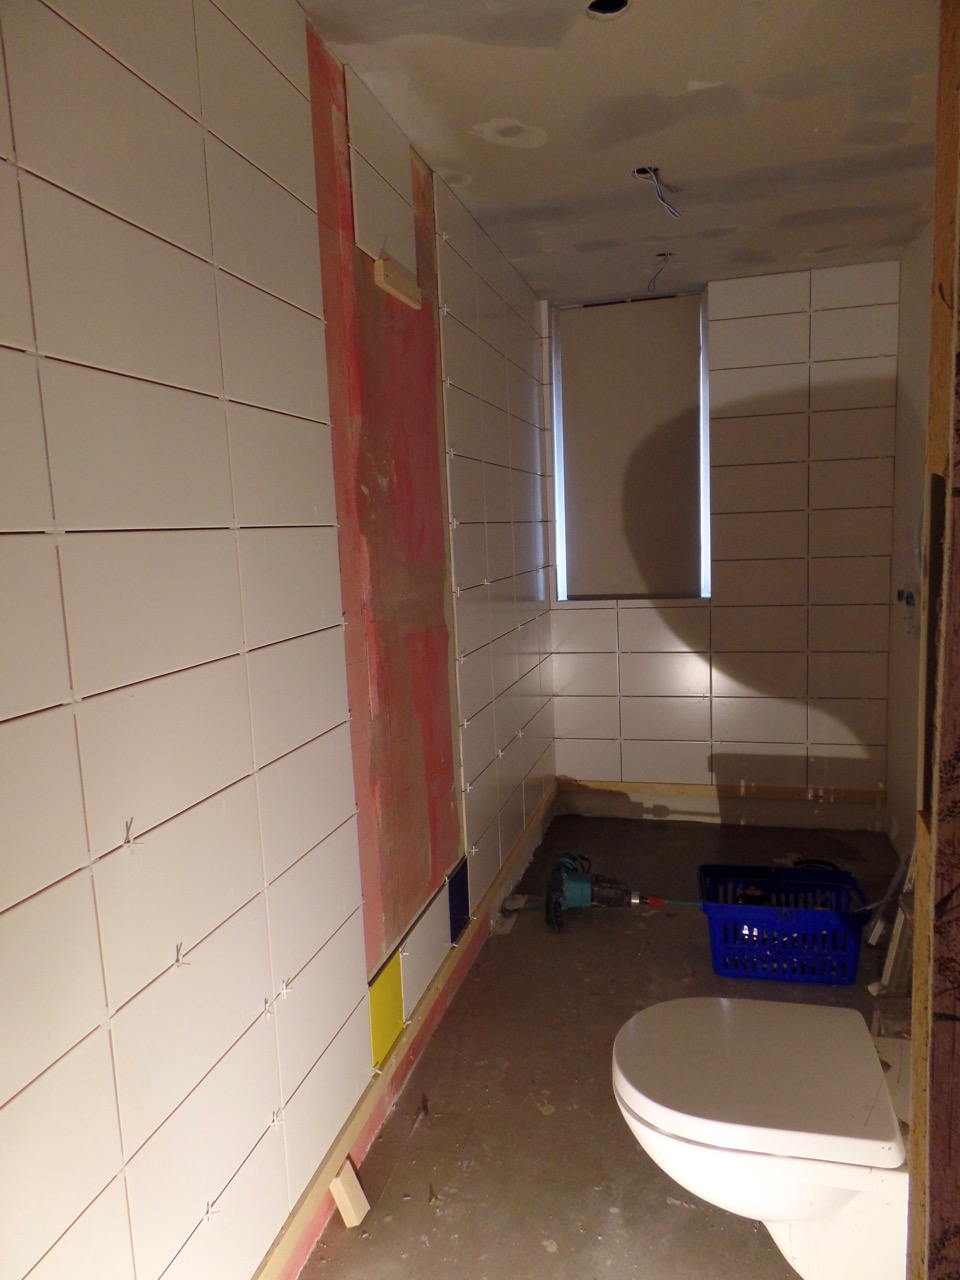 Walls tiled; mirror framing being placed